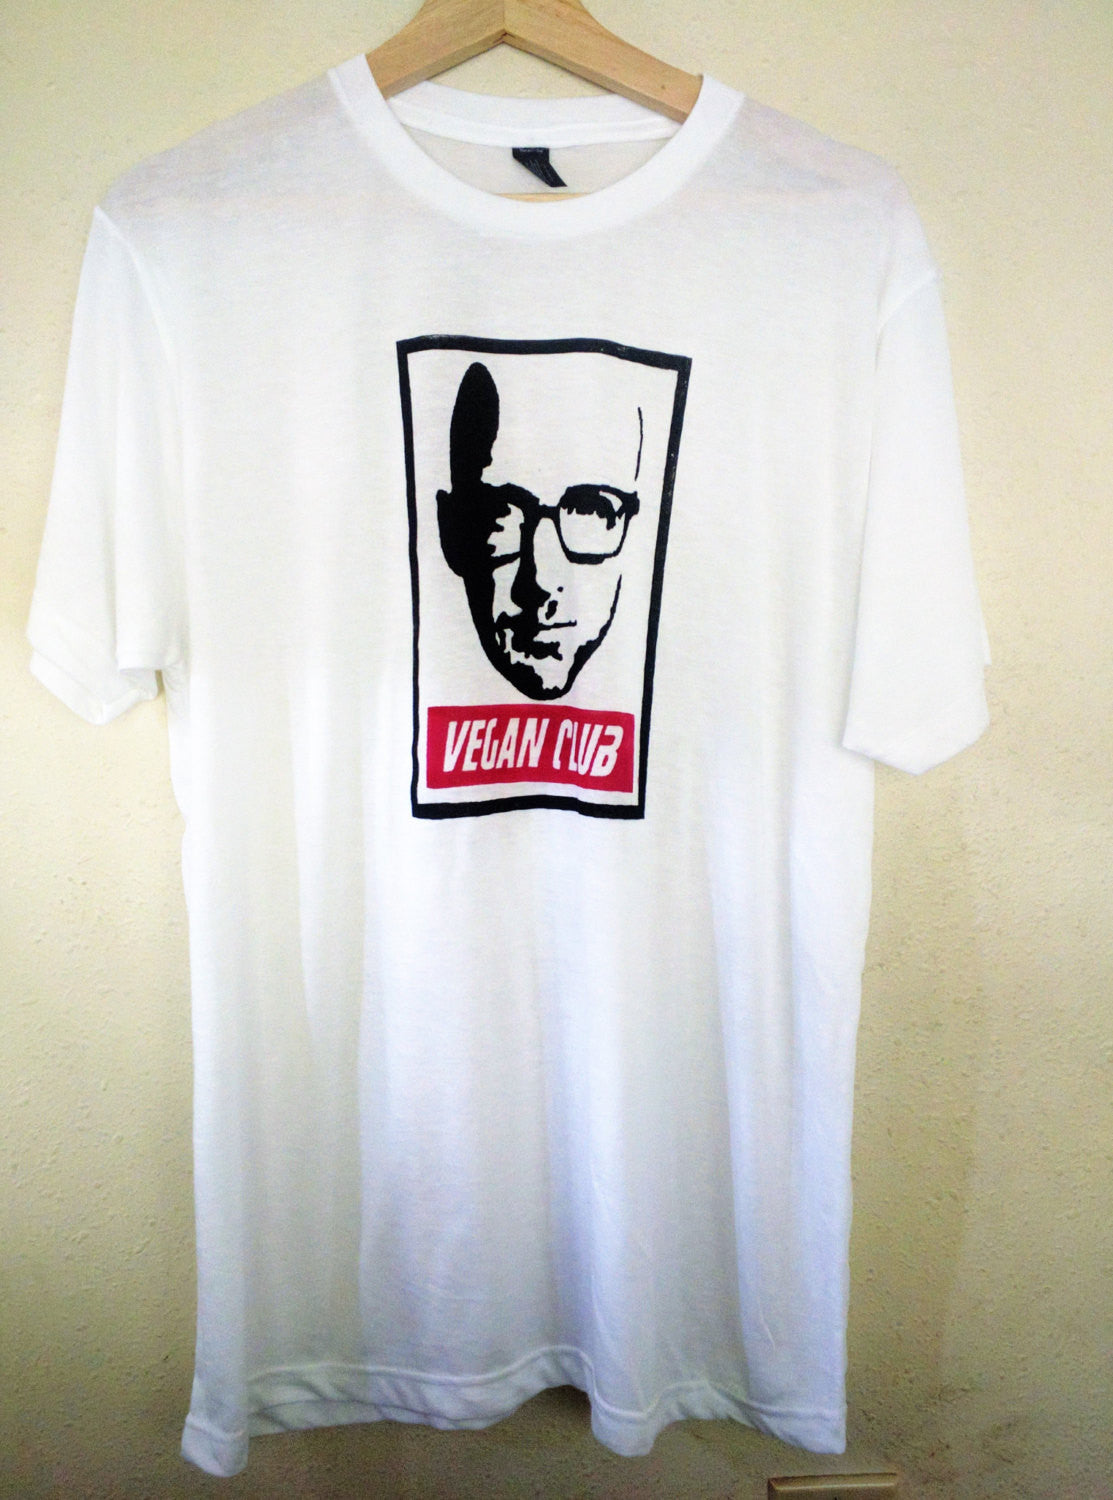 "Organic Made in USA T-shirt ""Vegan Club"" featuring Moby"